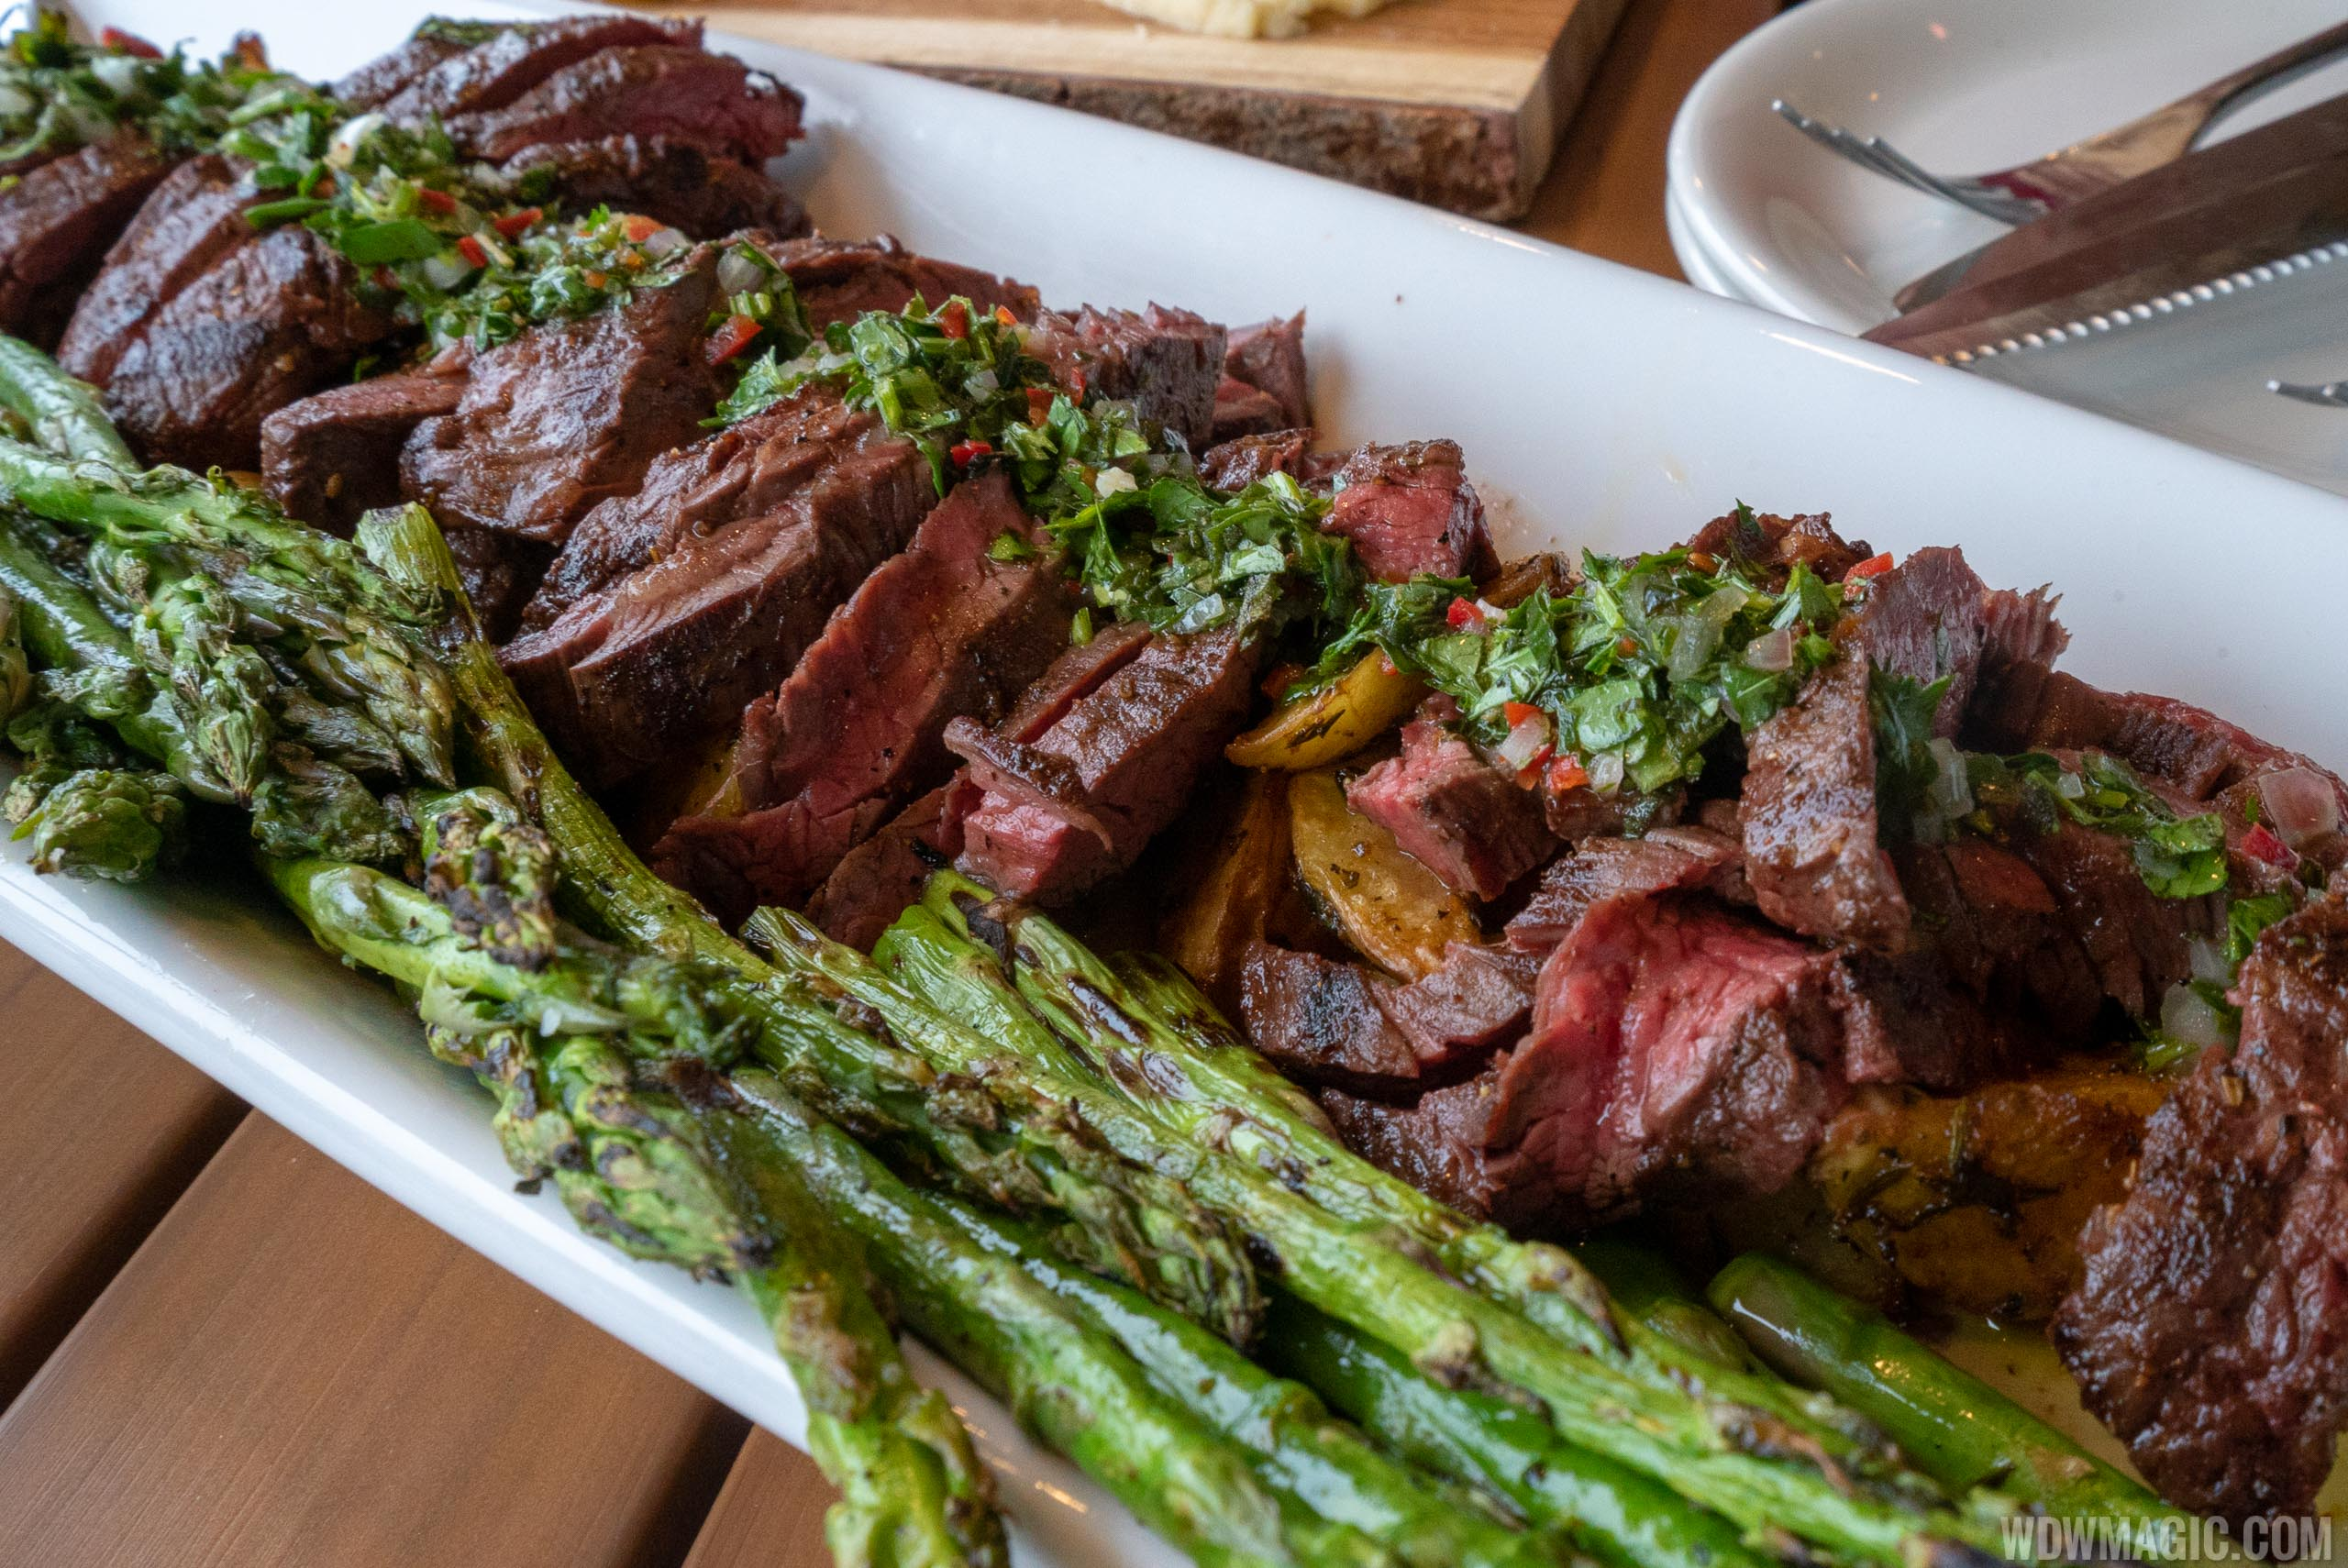 Wine Bar George - Skirt Steak family style plate $59